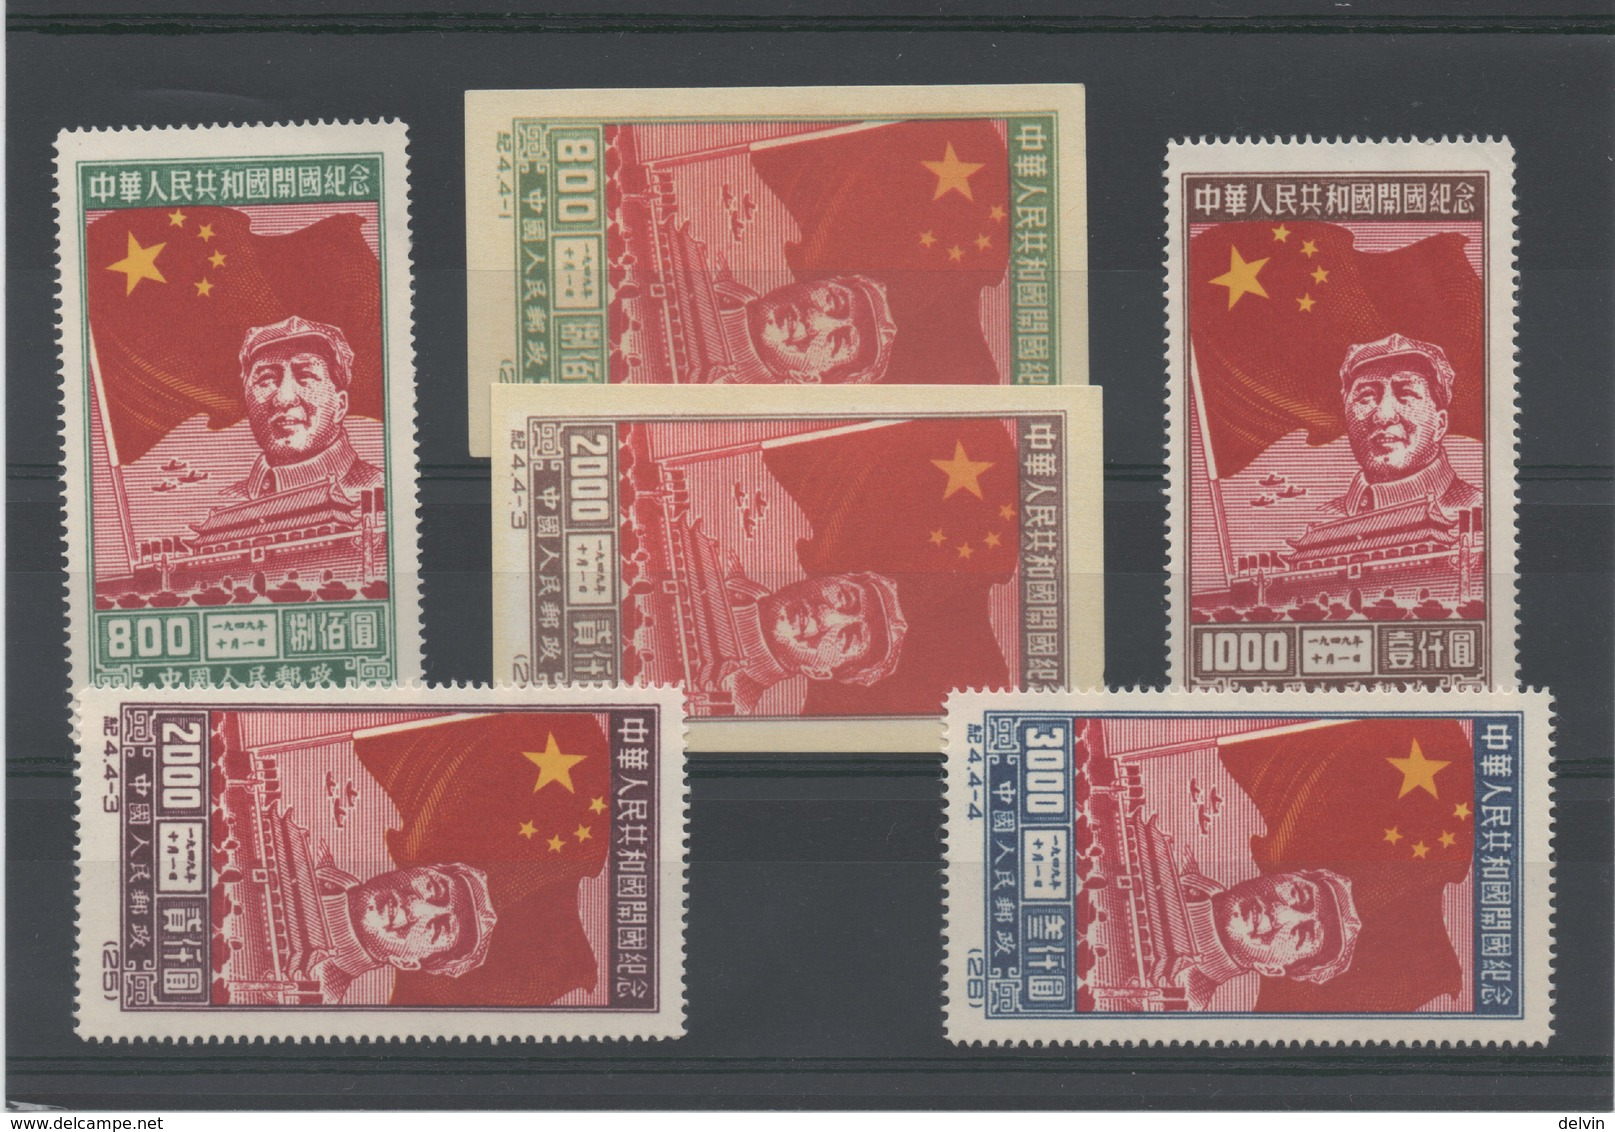 China - 1950 Mao Tze Tung And Flag Complete Set Of 6 Stamps Perf.& Imperf. Reprint Of The Era. New No Gum (see Photo) - Official Reprints